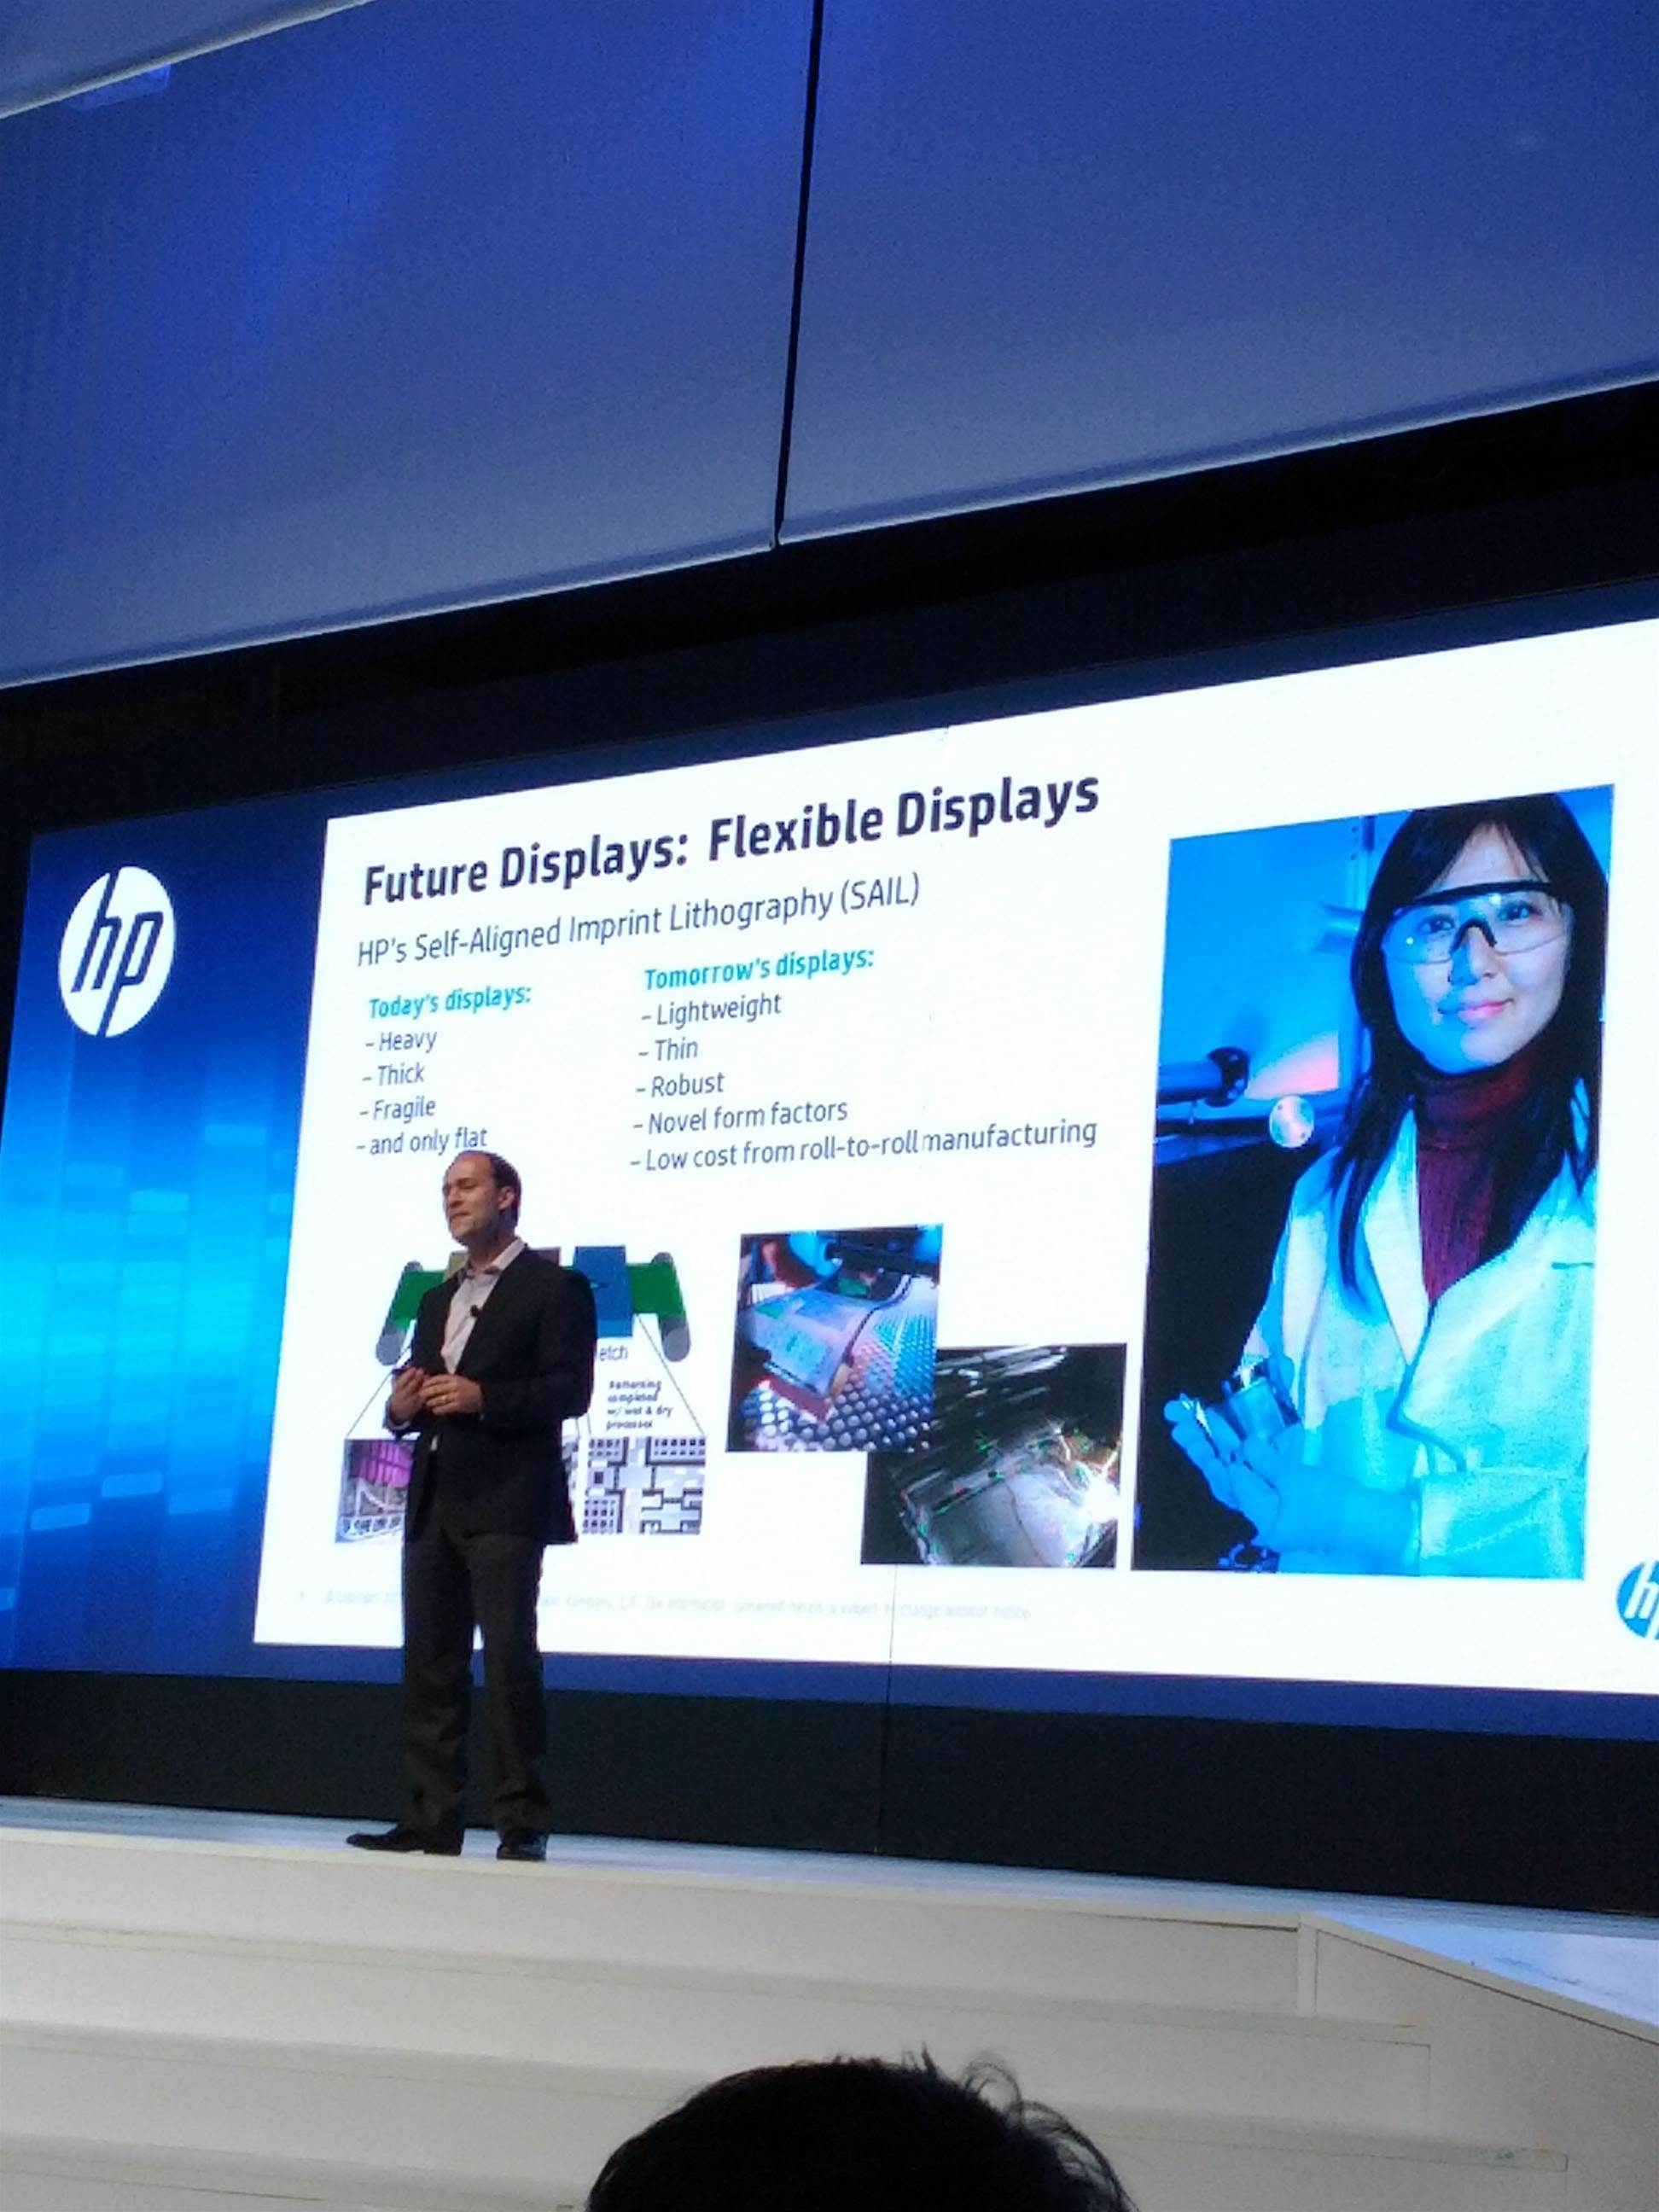 Thin, flexible, indestructible: HPs vision of the future